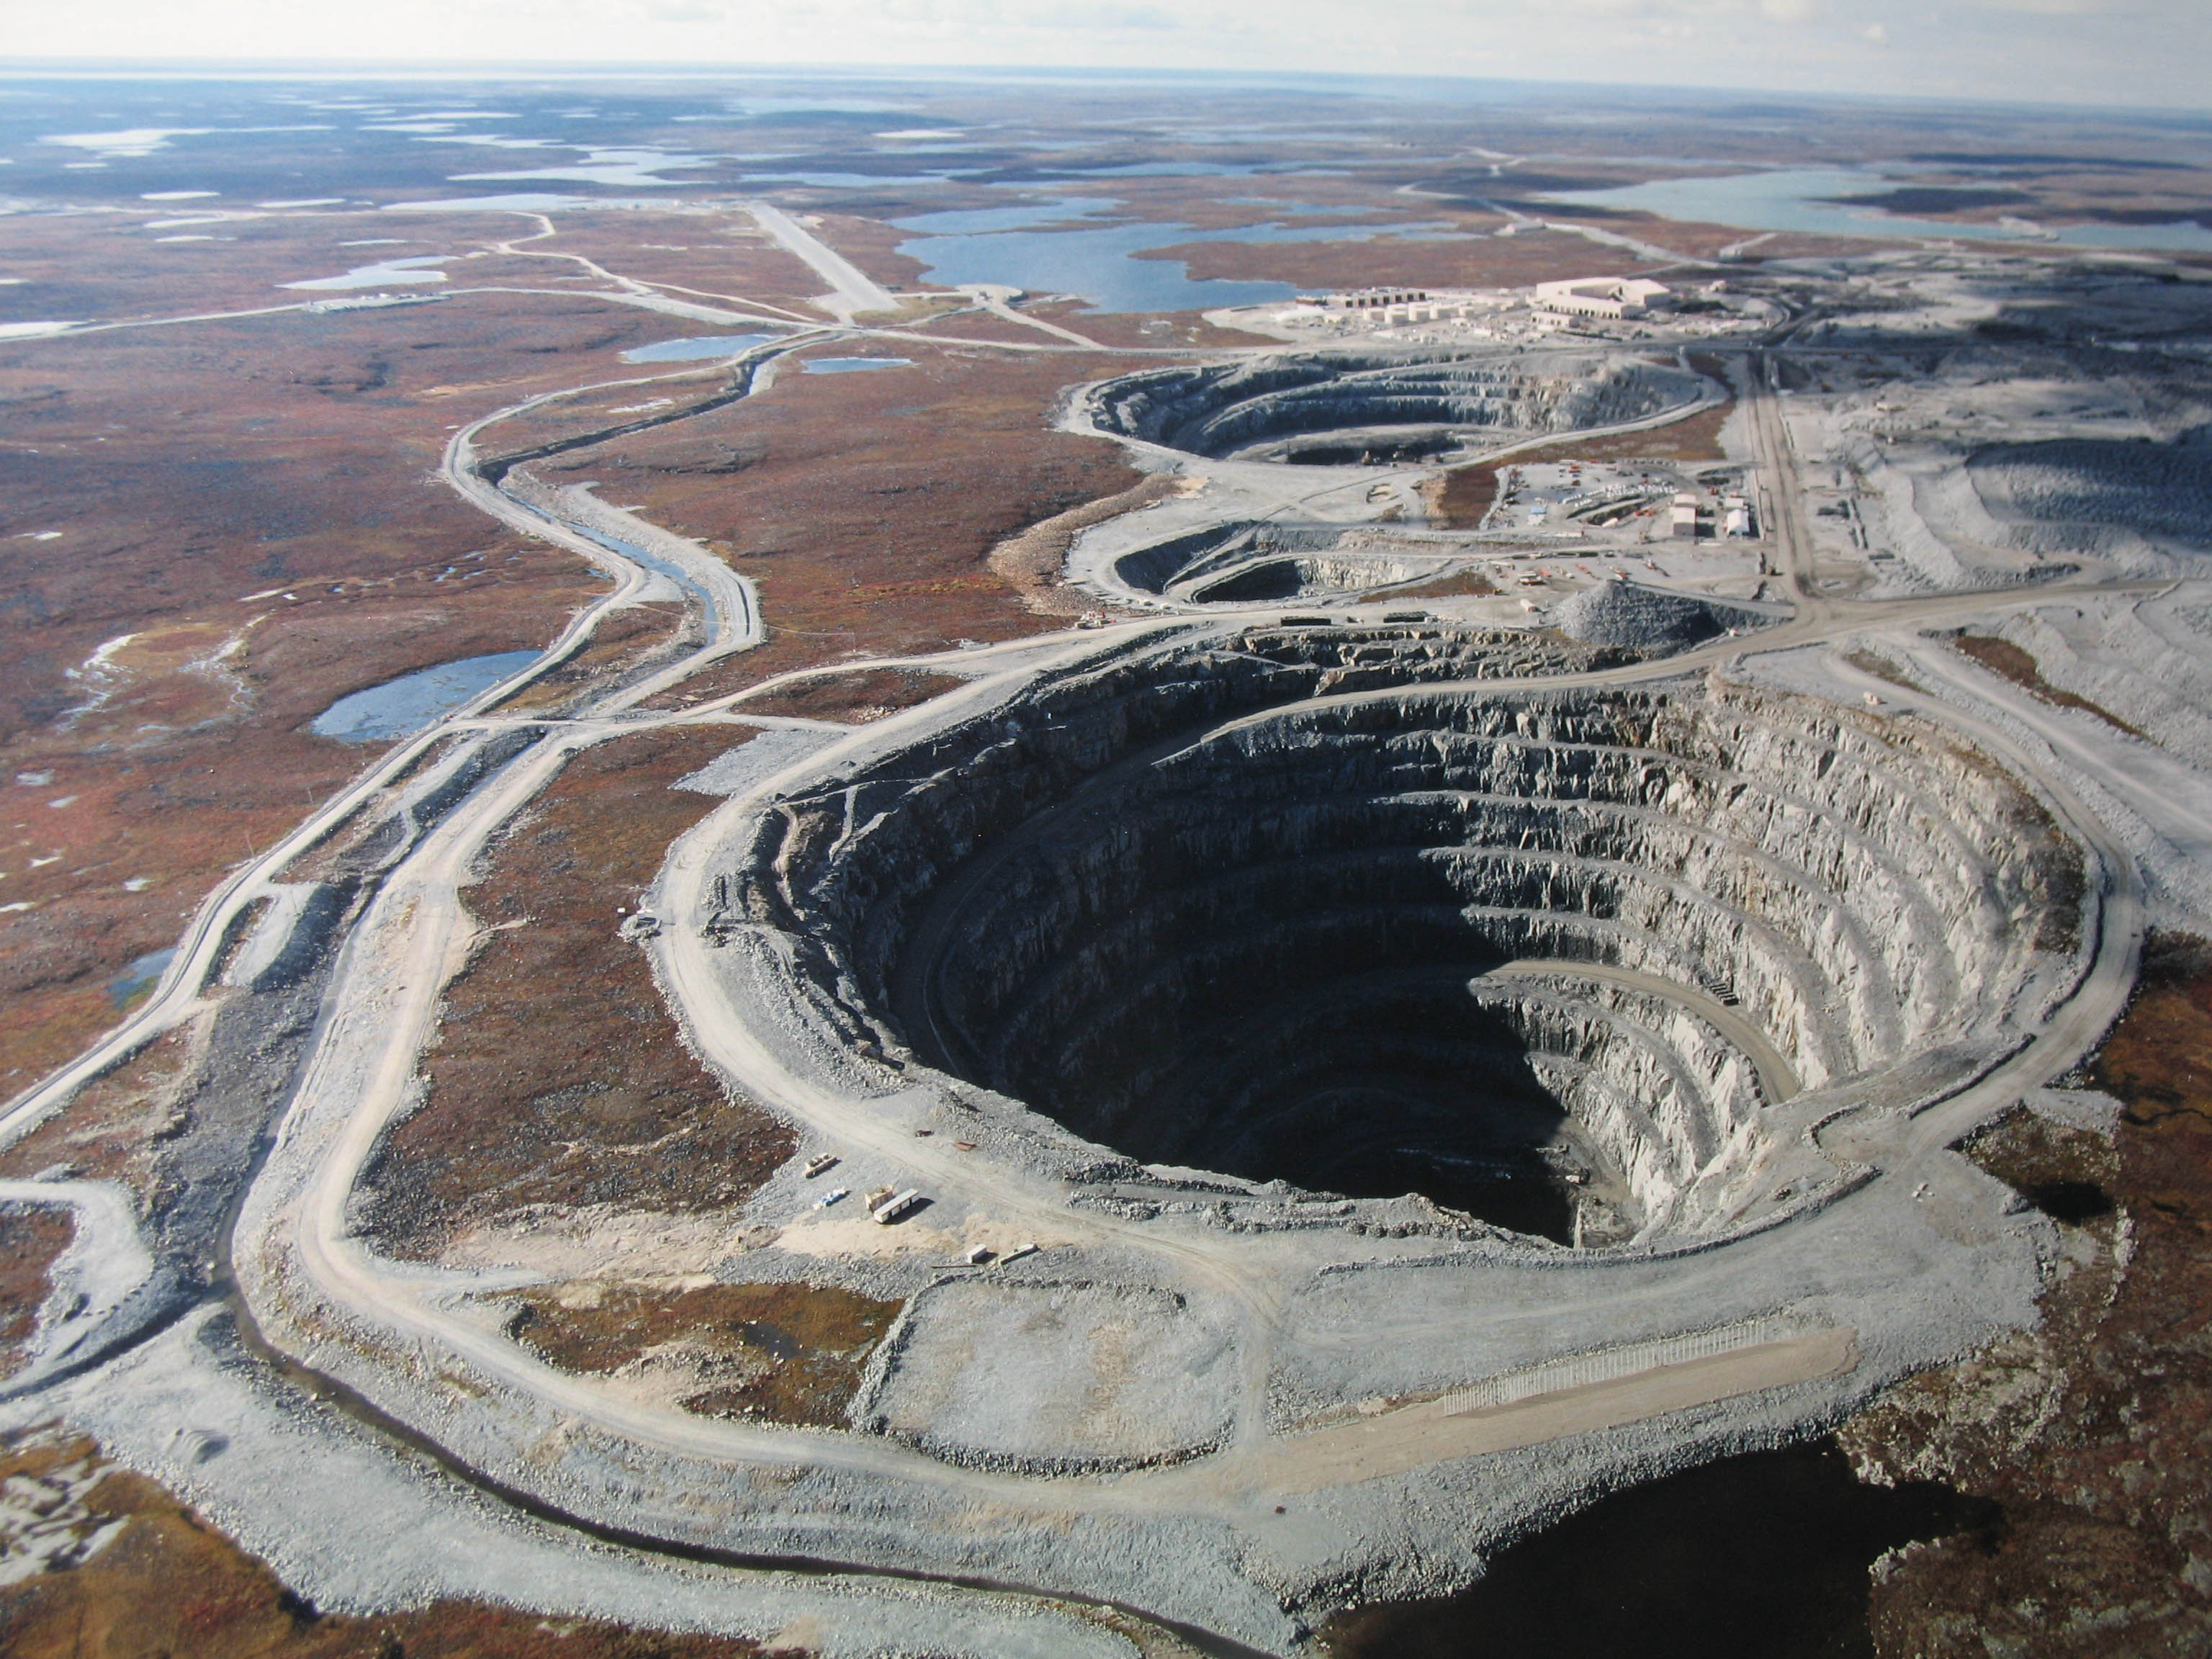 mining is beneficial of canada Towards sustainable mining (tsm) is a program developed by the mining association of canada (mac) it was launched in 2004, and is based on a set of guiding principles and performance elements that govern key activities of companies in the mining and mineral-processing industry [9].